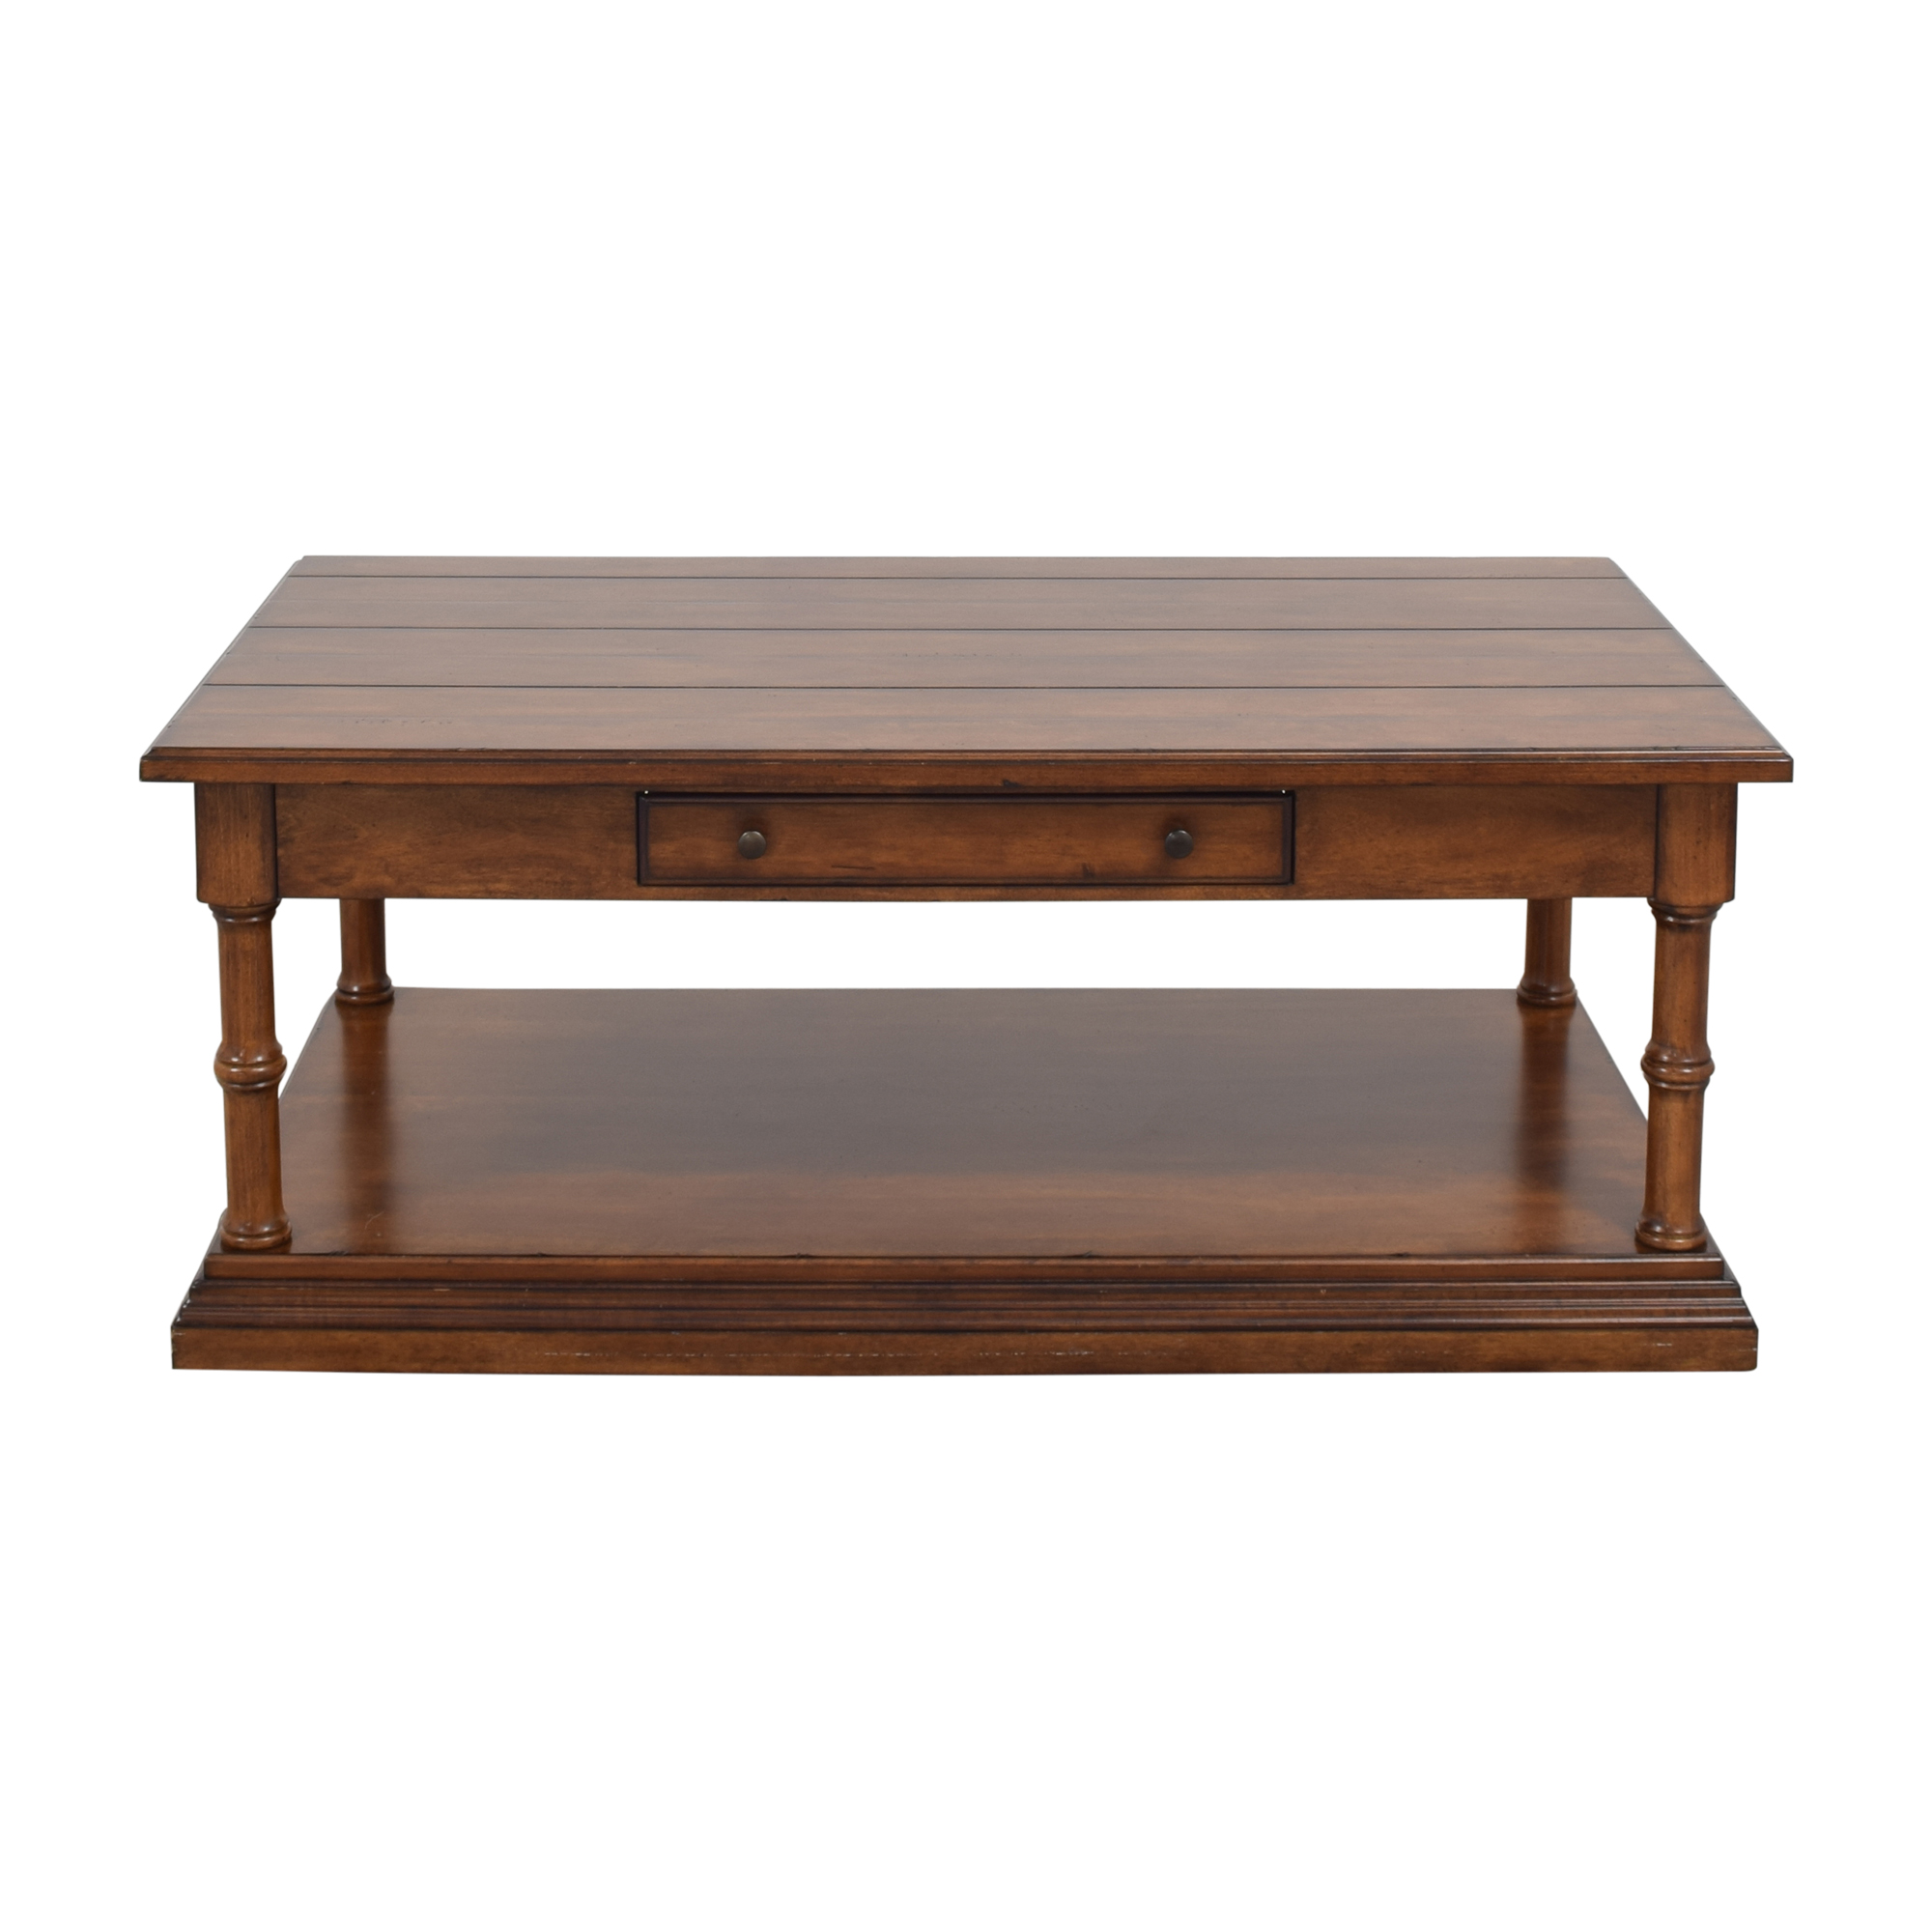 shop Thomasville Two Tier Coffee Table Thomasville Coffee Tables